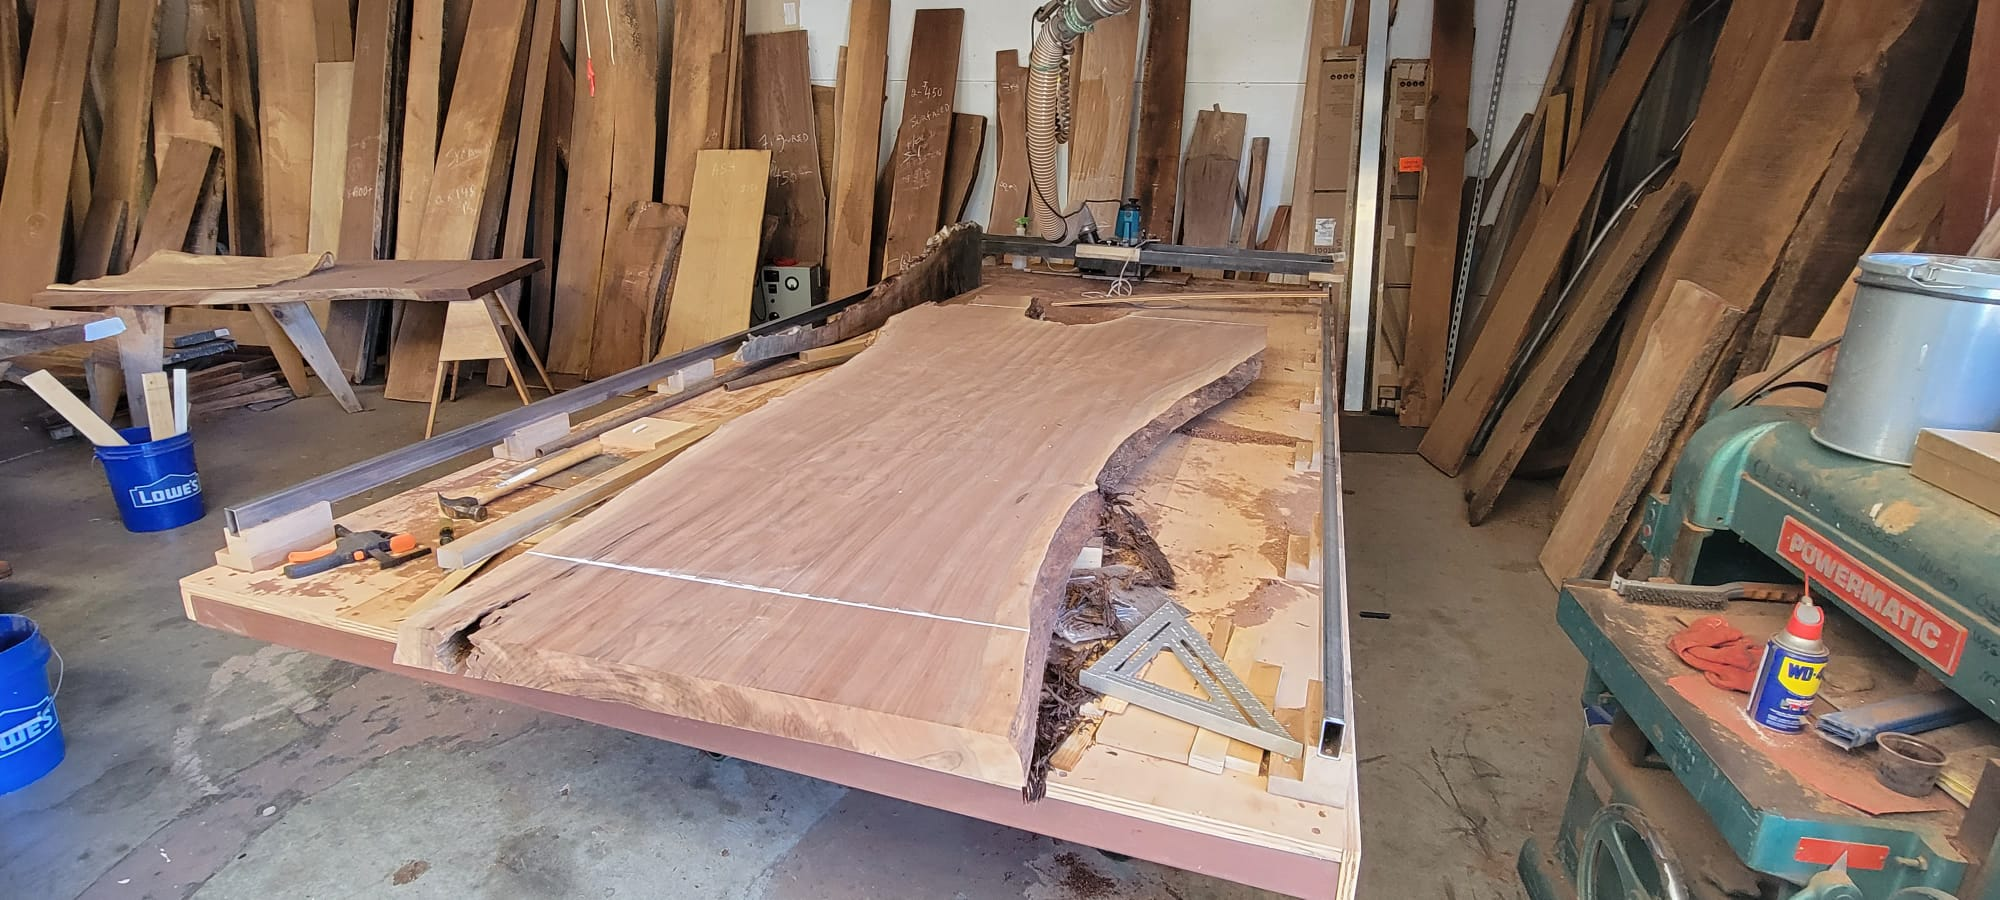 Maxiwoods - table manufacturer California